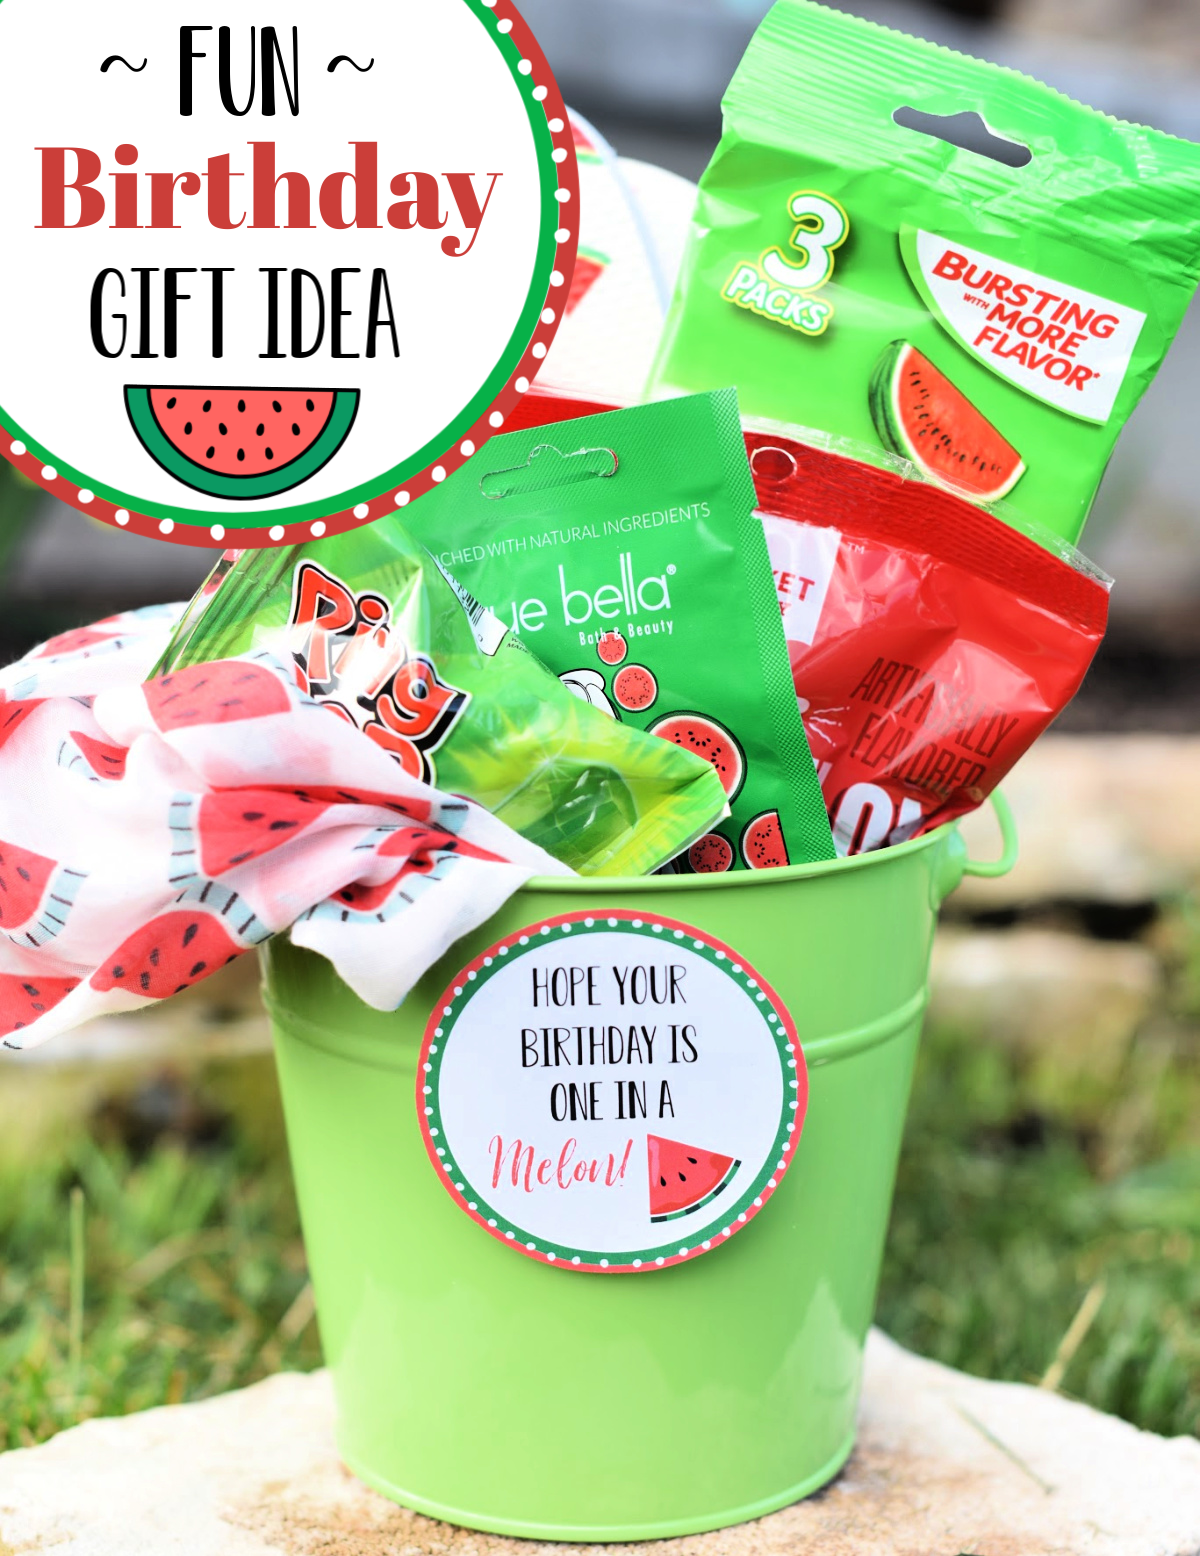 "Simple Birthday gift for her! This ""One in a Melon"" gift idea is the perfect way to wish her a happy birthday. Fun and simple birthday gift idea! #birthdaygift #fungiftidea #melongiftidea #birthday #funbirthdaygiftidea"